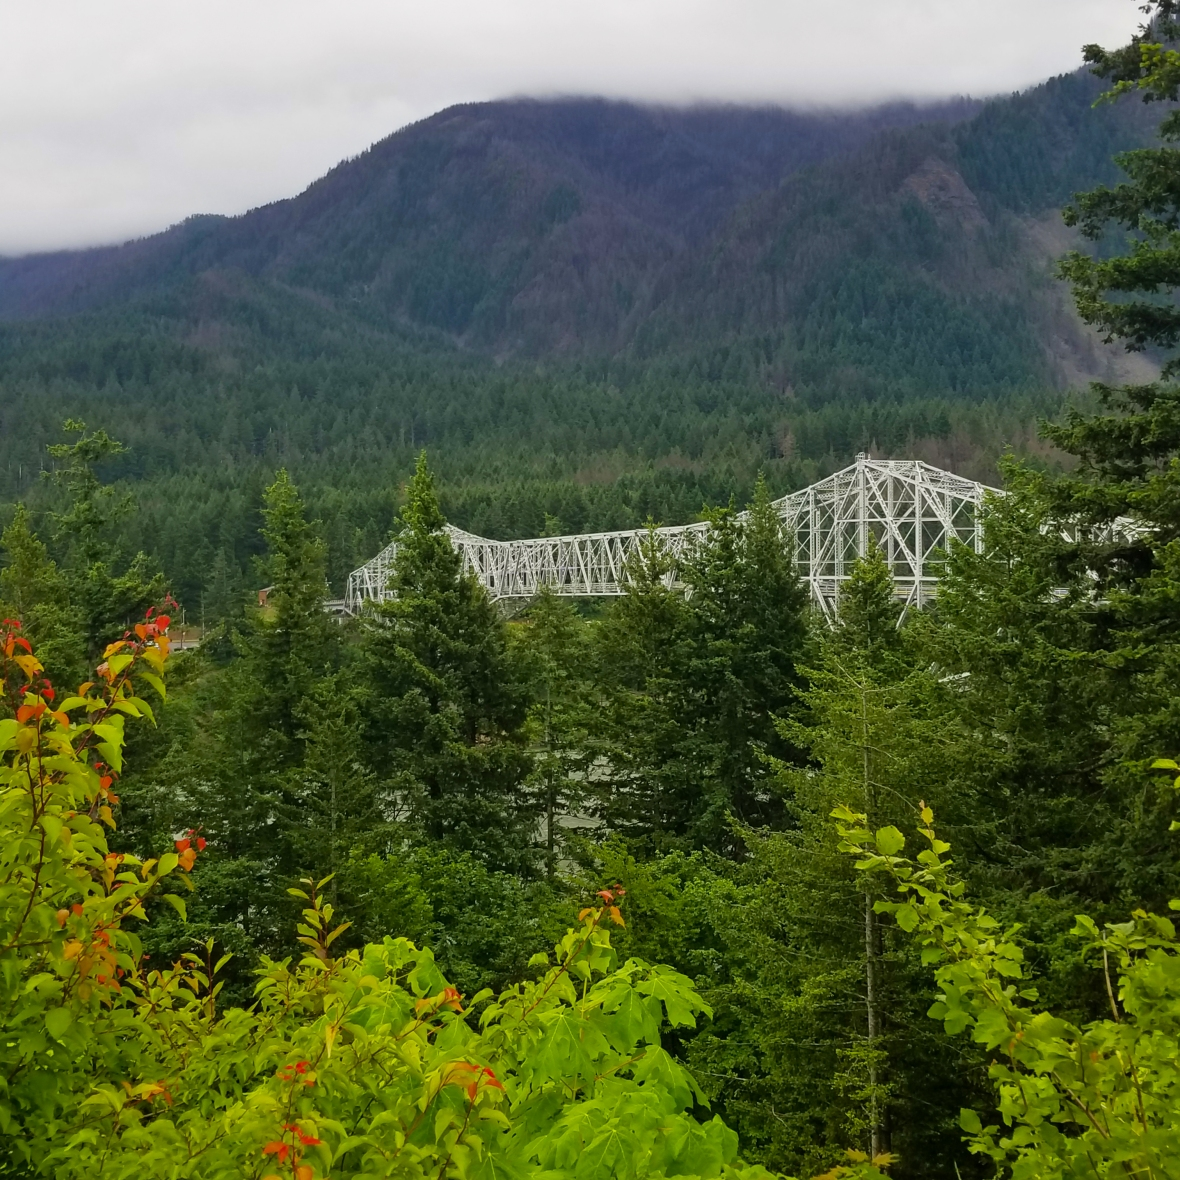 Bridge of the Gods - Skamania Oregon